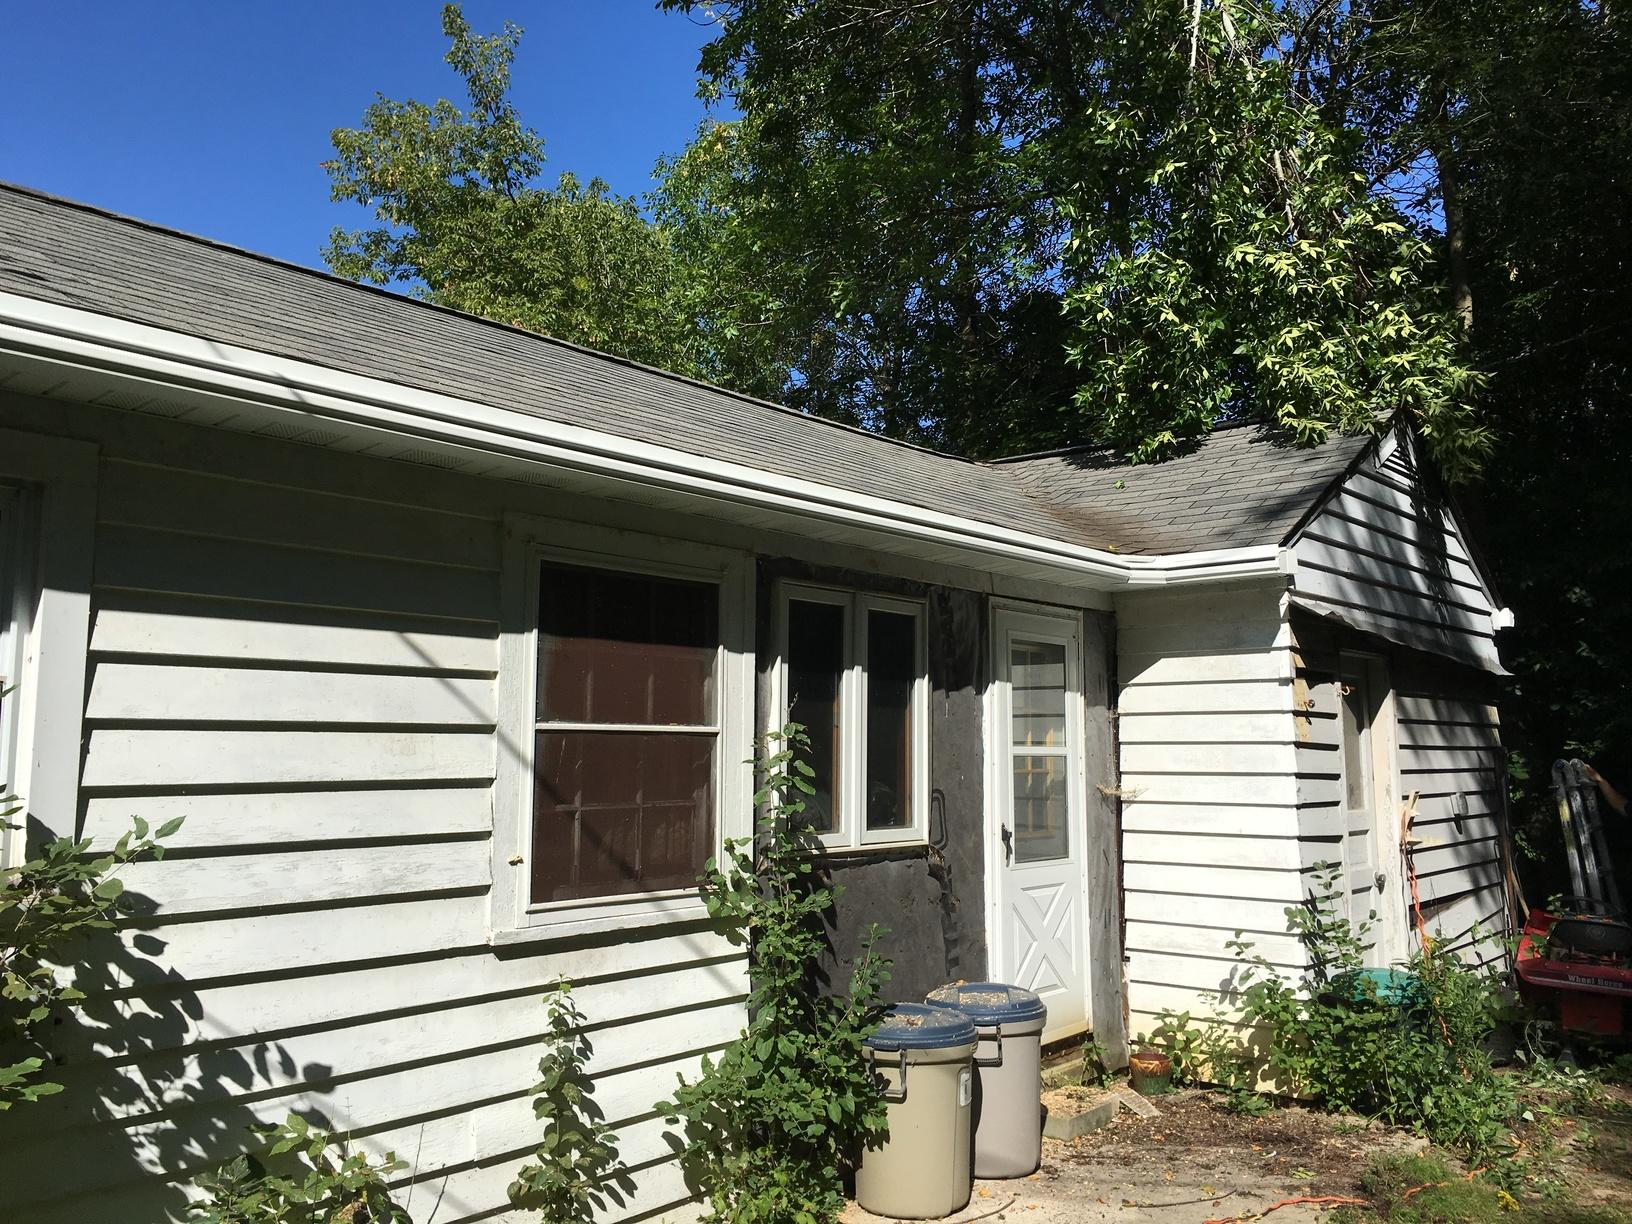 LeafGuard gutters installed on home in Sheboygan, Wisconsin - After Photo